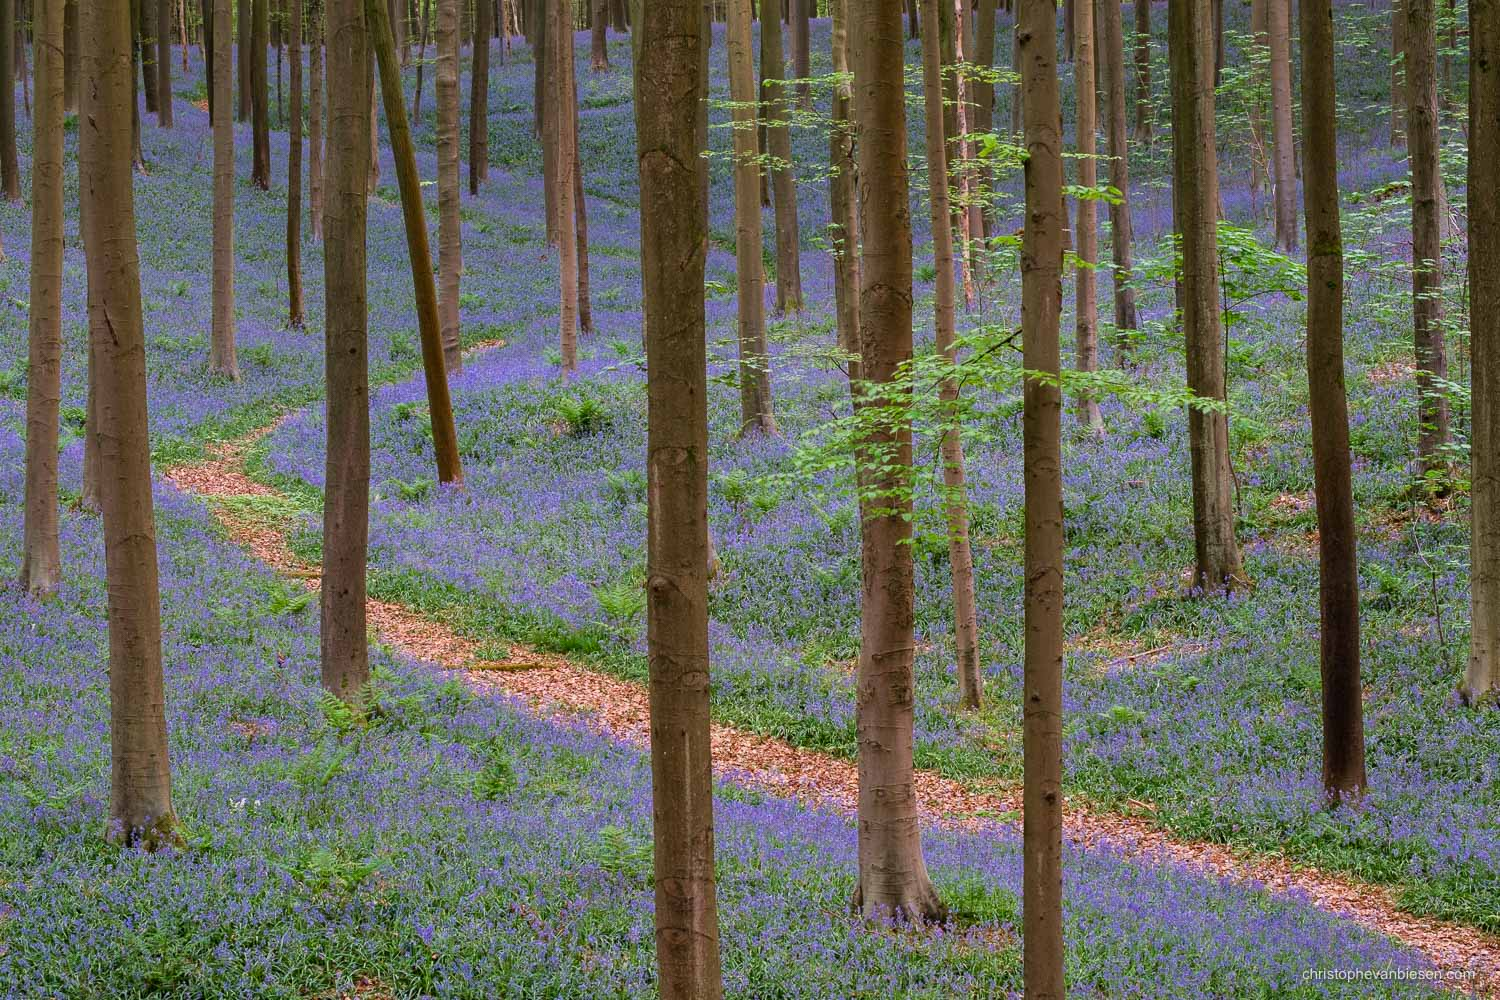 Hallerbos - Belgium - Classic view in the Hallerbos with a winding path and a carpet of bluebells - The Purple Path